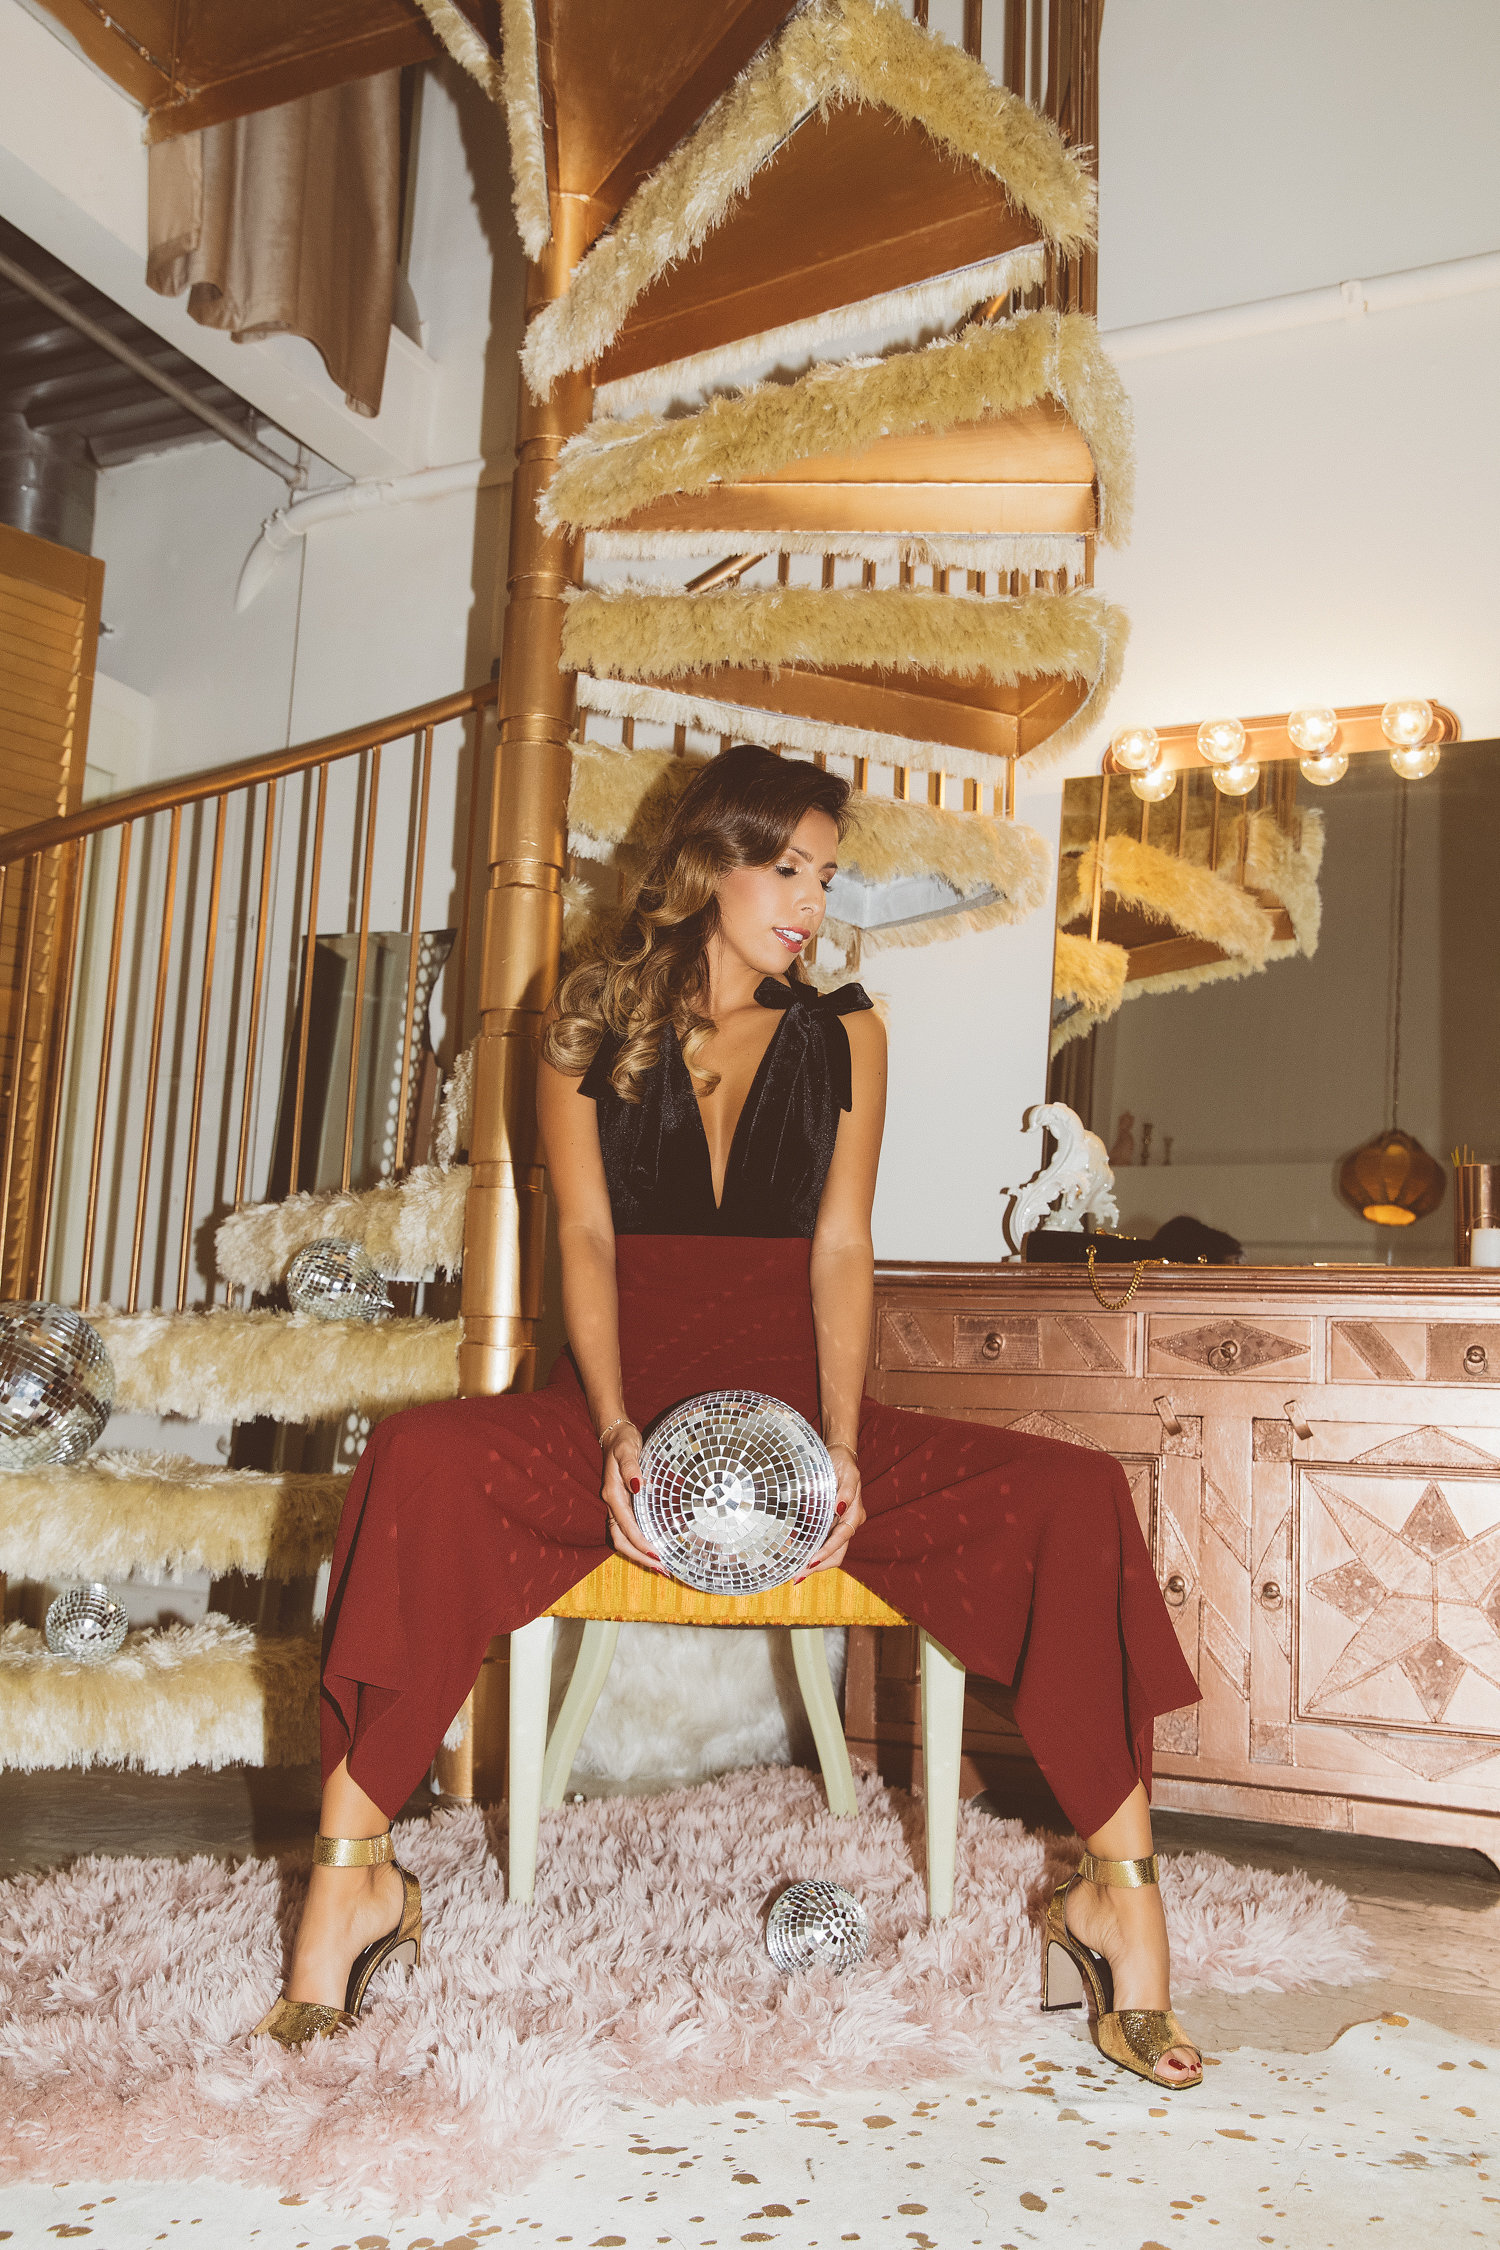 disco ball 70s outfit, holiday style, everyday pursuits